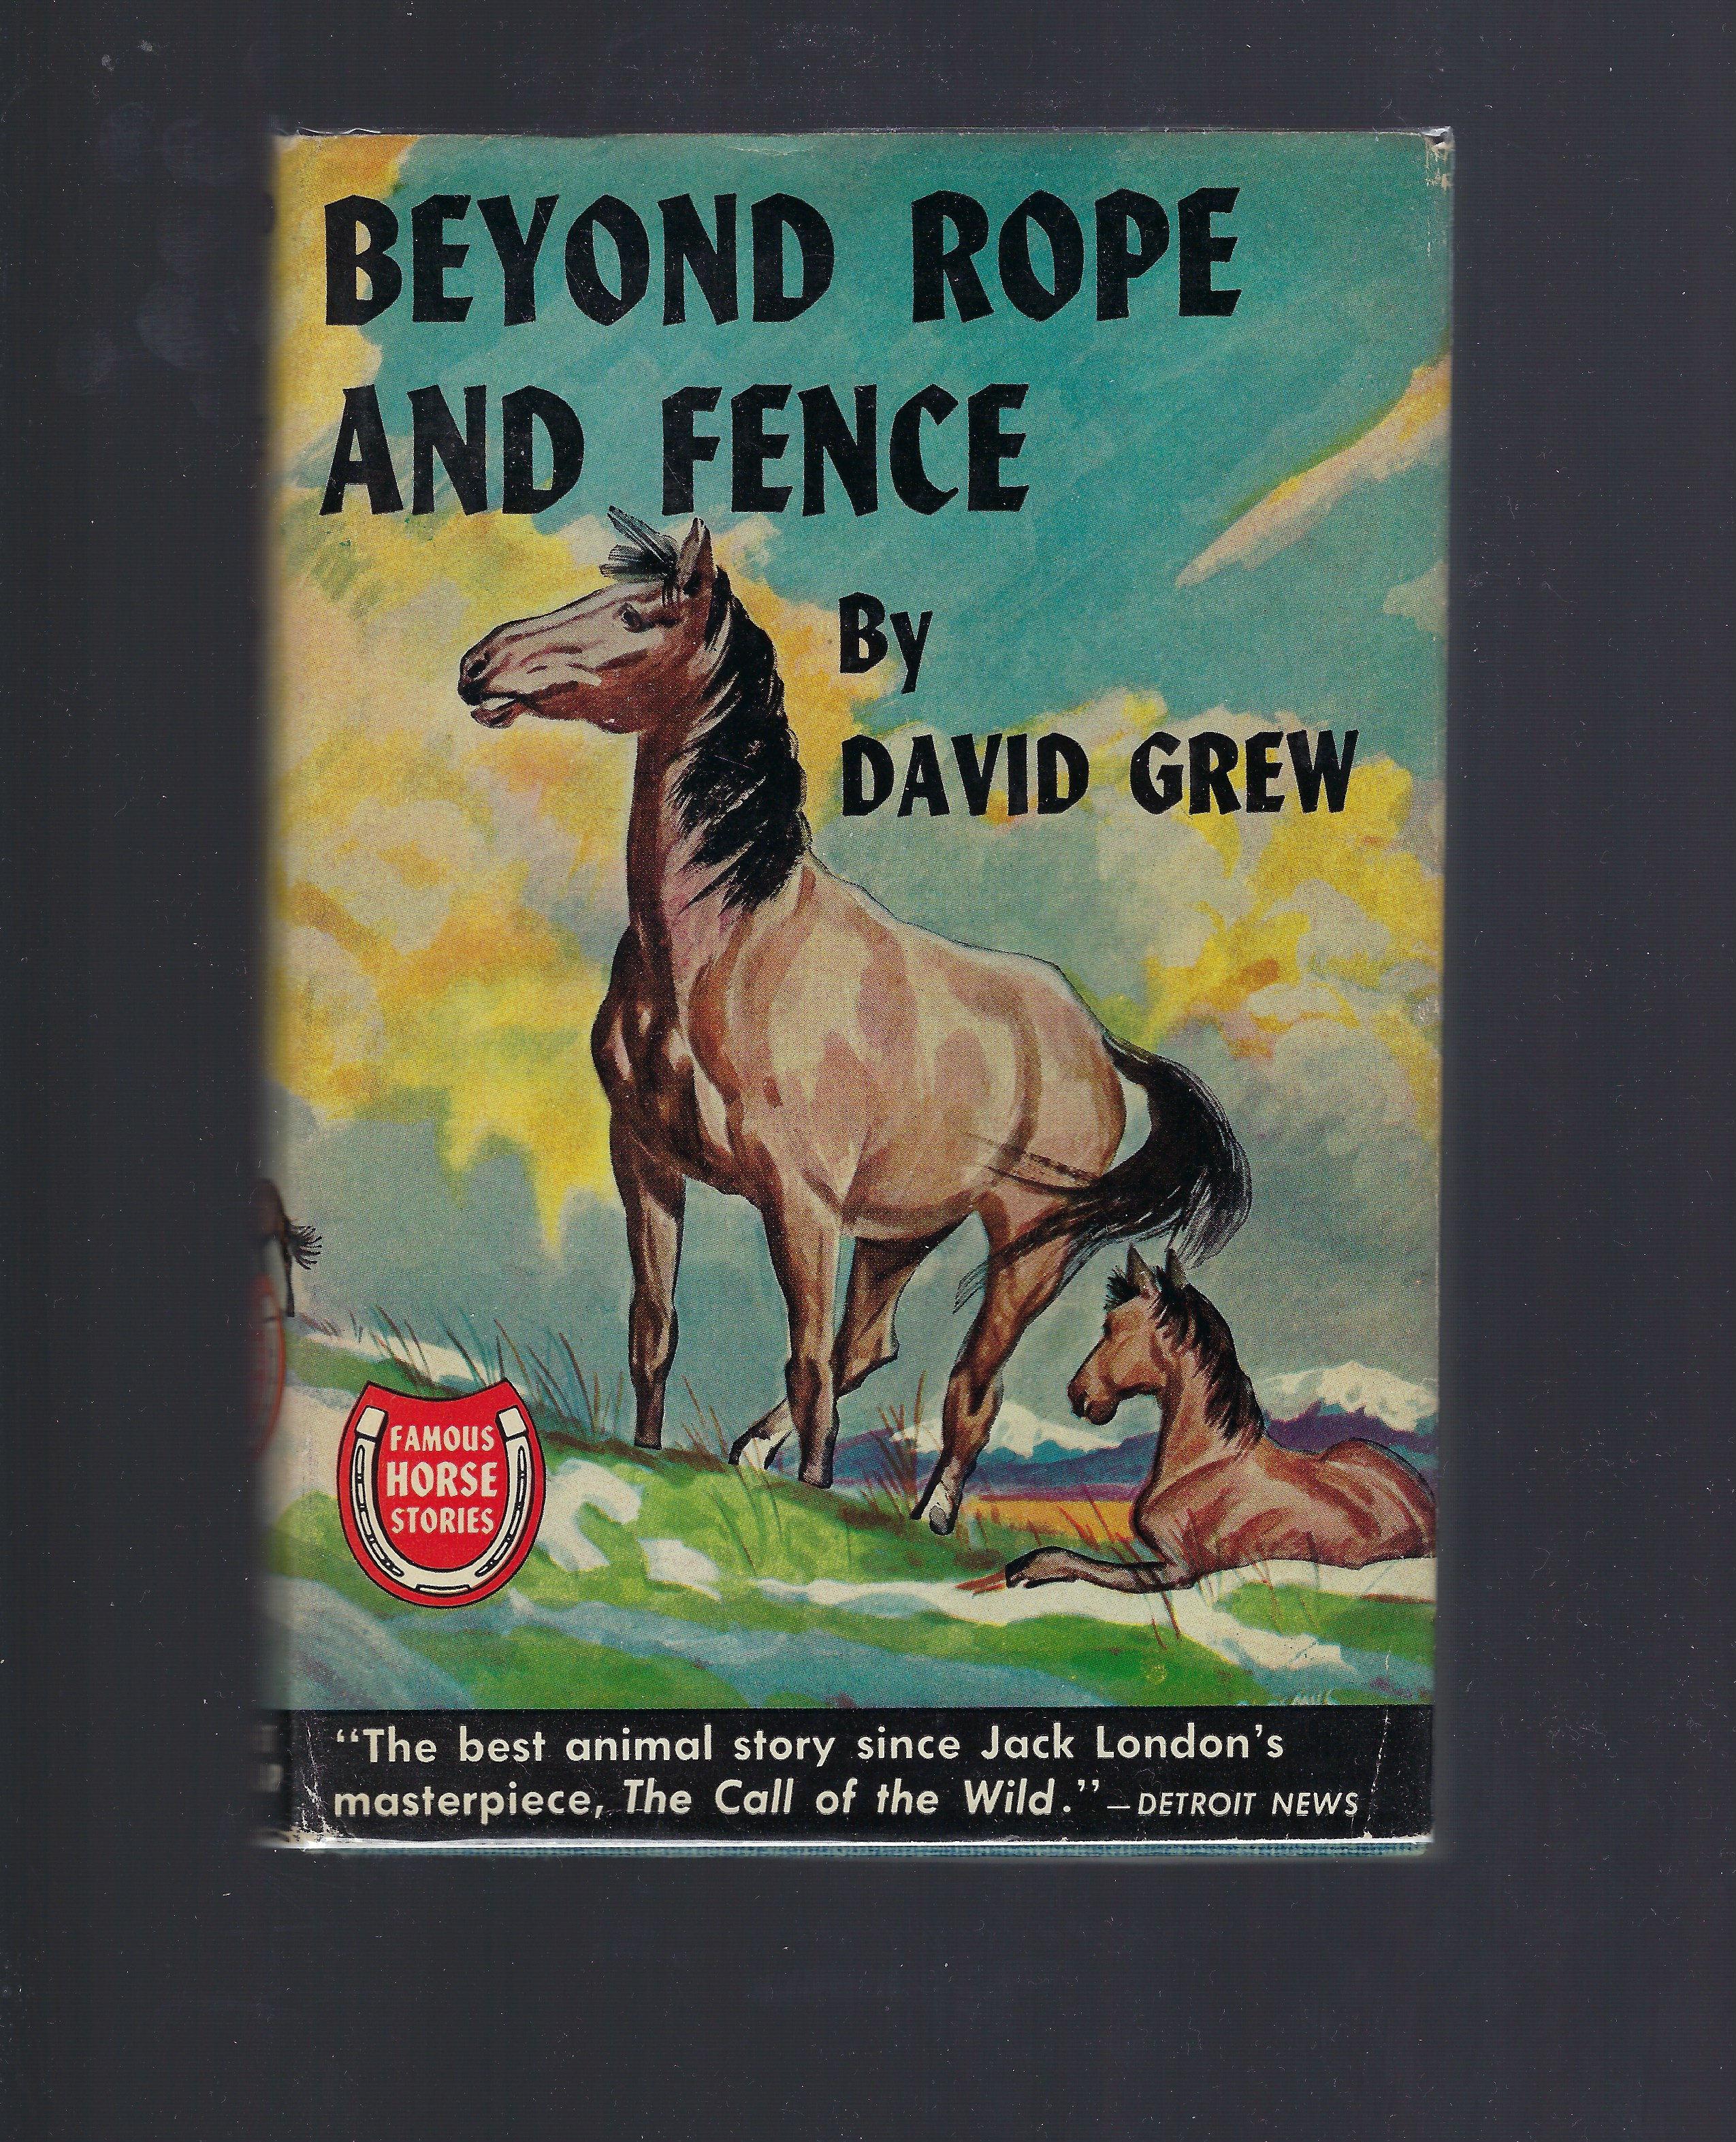 Beyond Rope and Fence (Famous Horse Stories) HB/DJ David Grew, David Grew